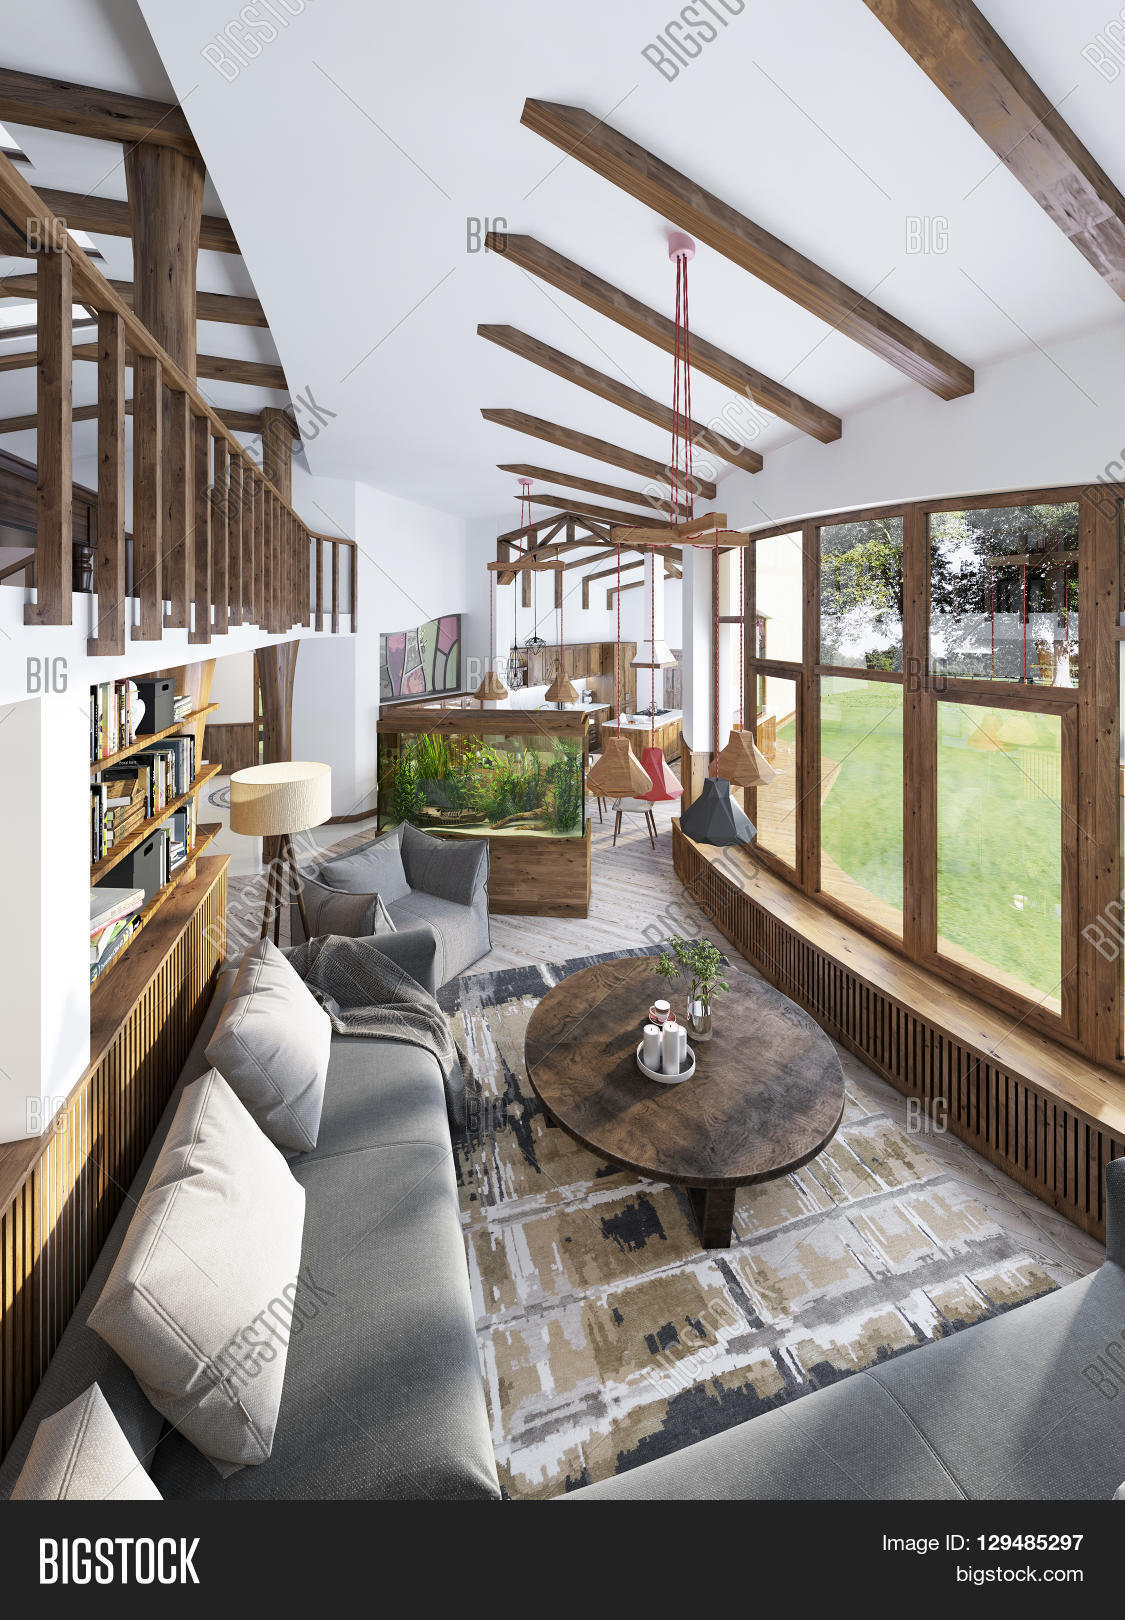 Large Living Room Studio With A Kitchenette And Balcony In An Organic Style